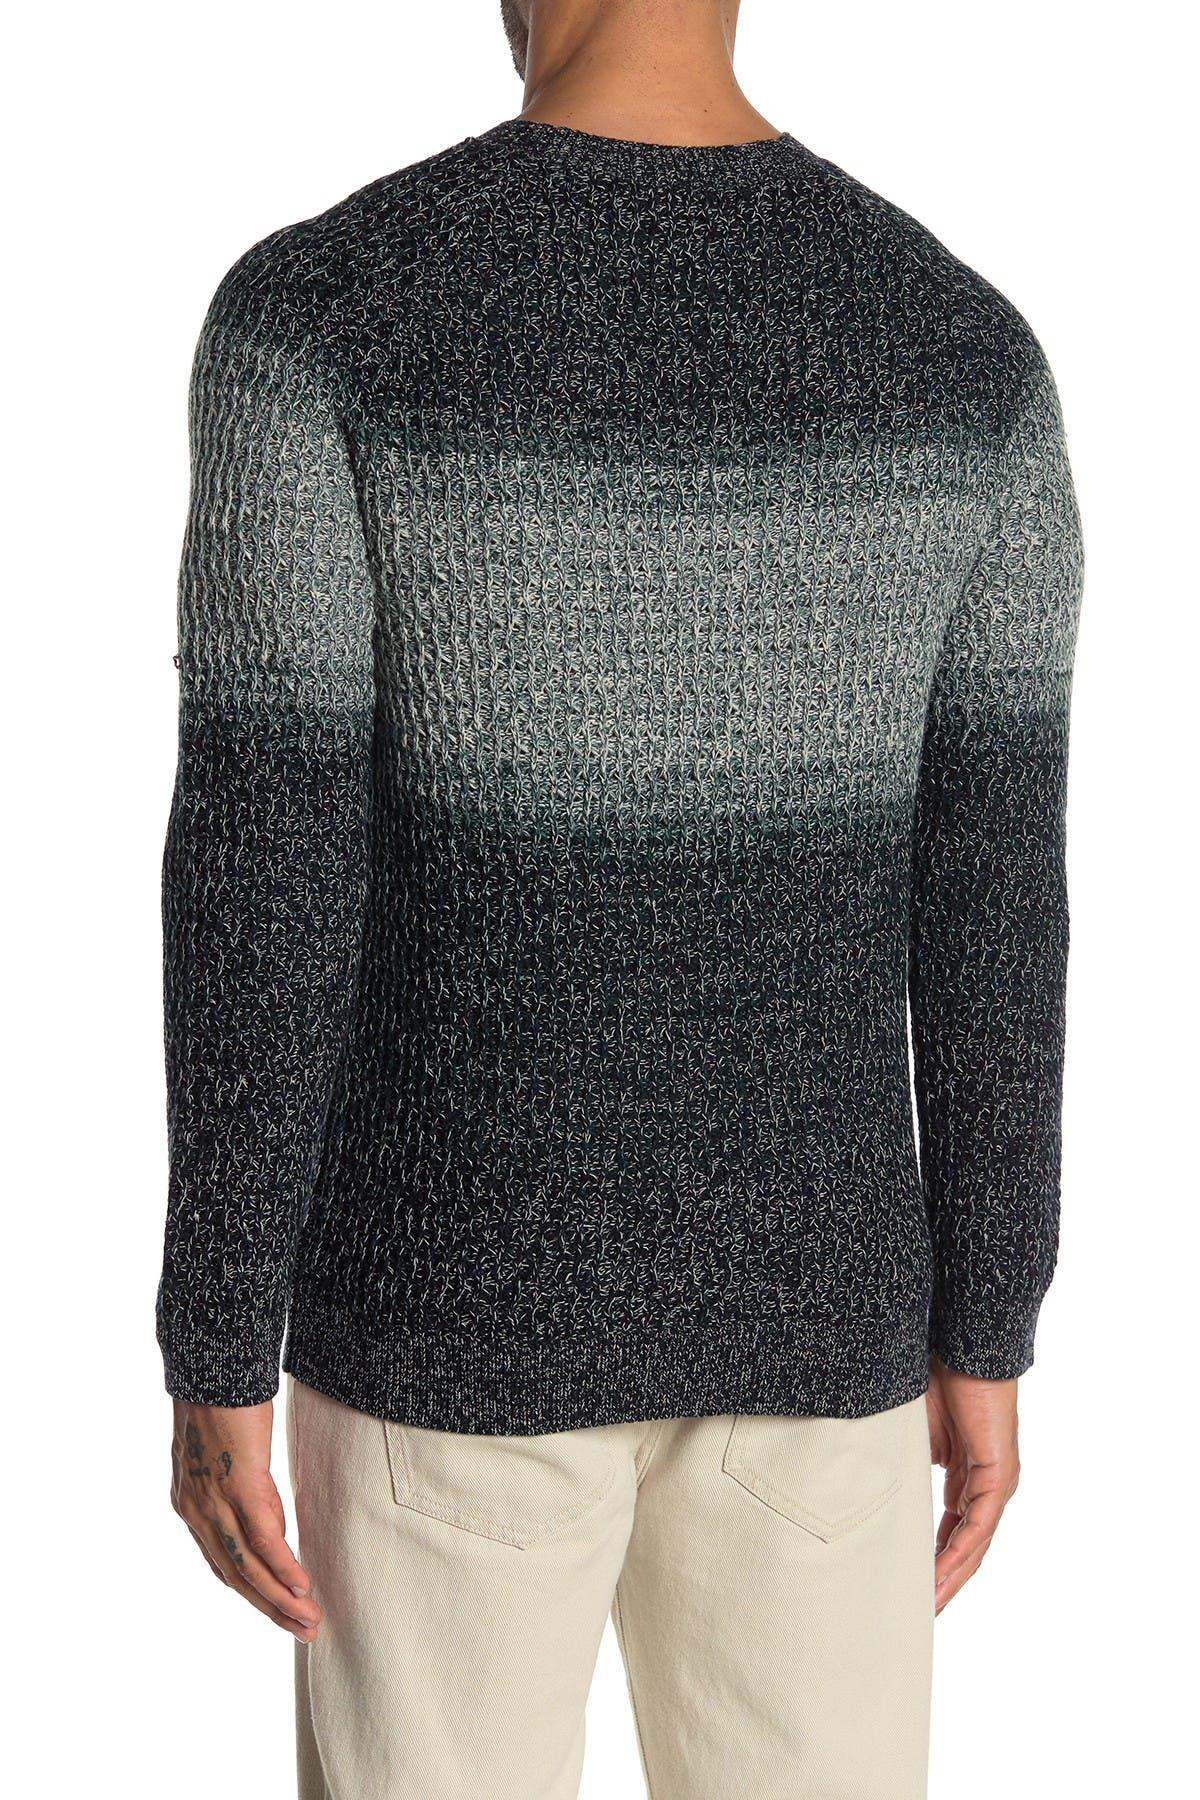 Image of Theory Alcone New Sovereign Wool Sweater